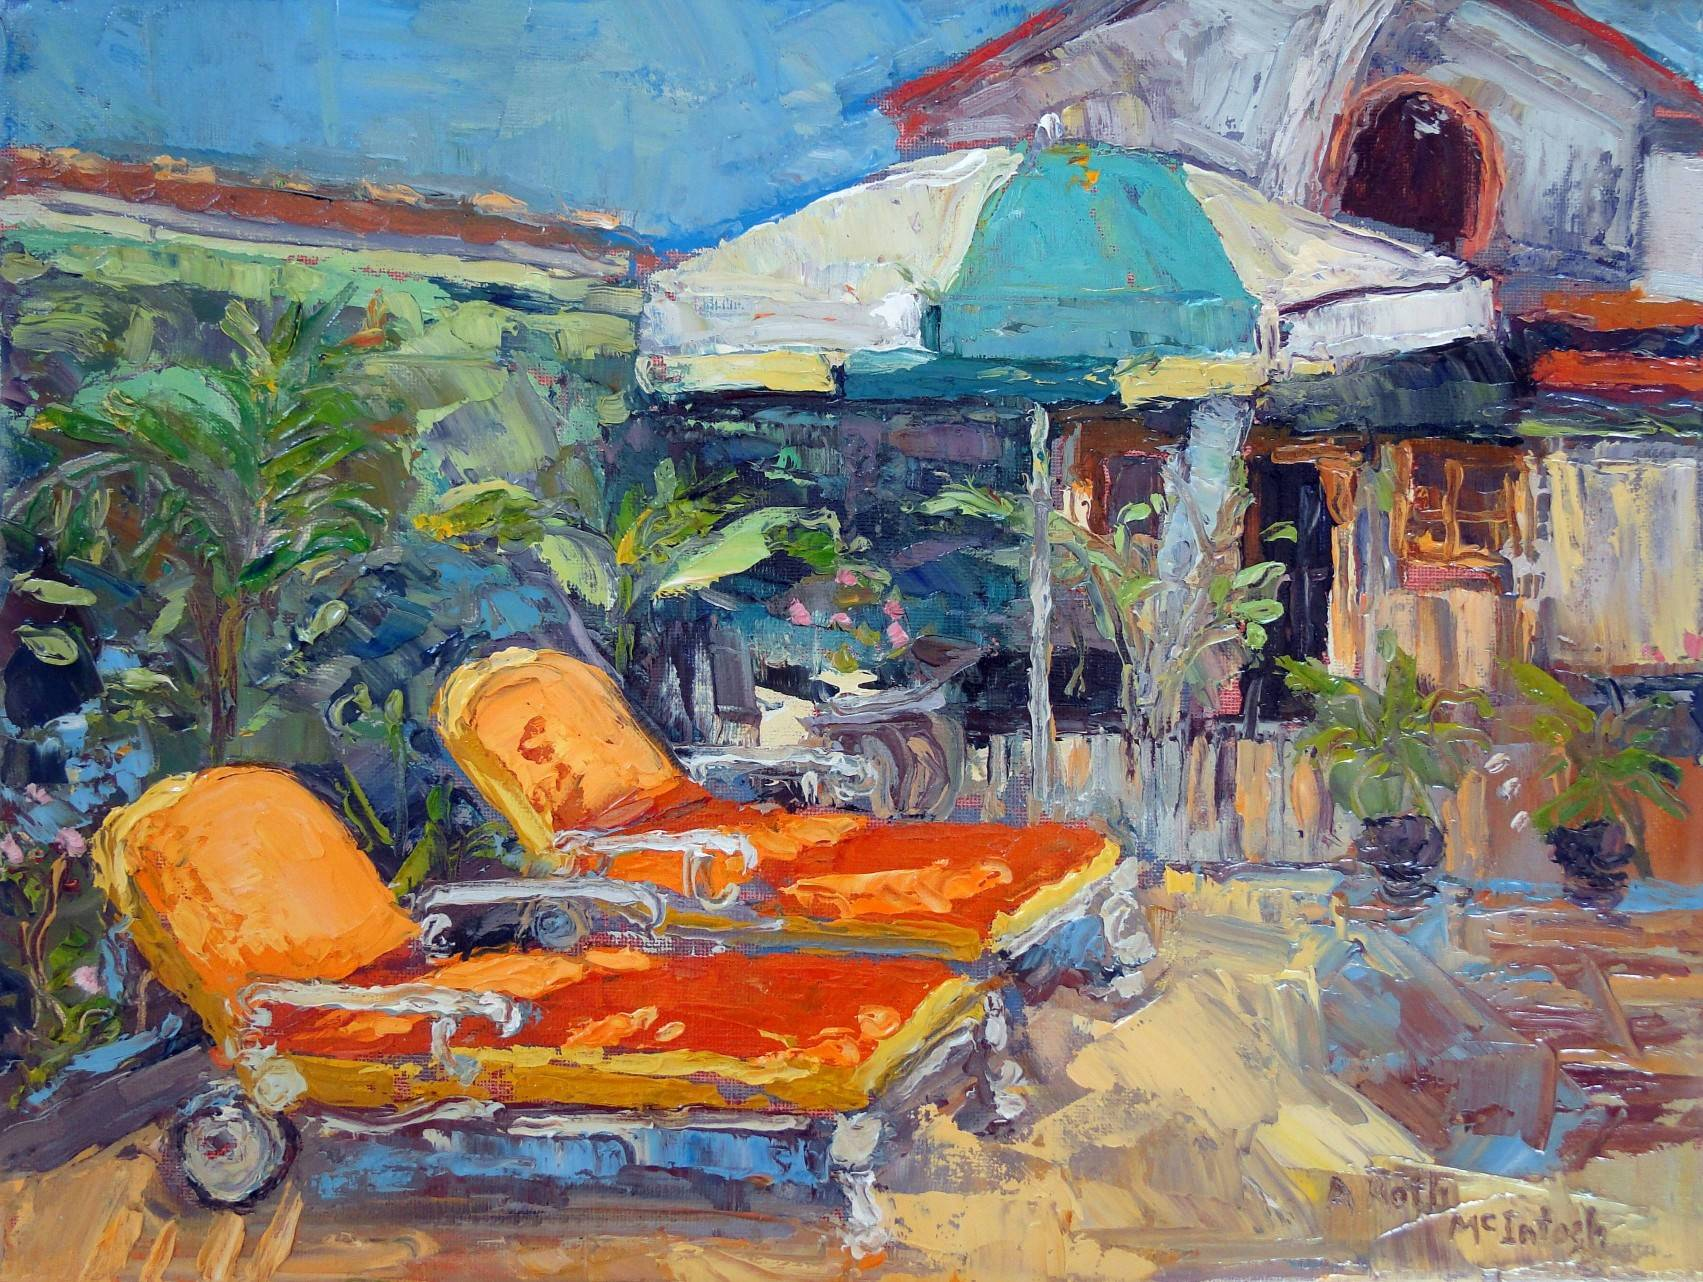 Orange Chairs and Umbrella